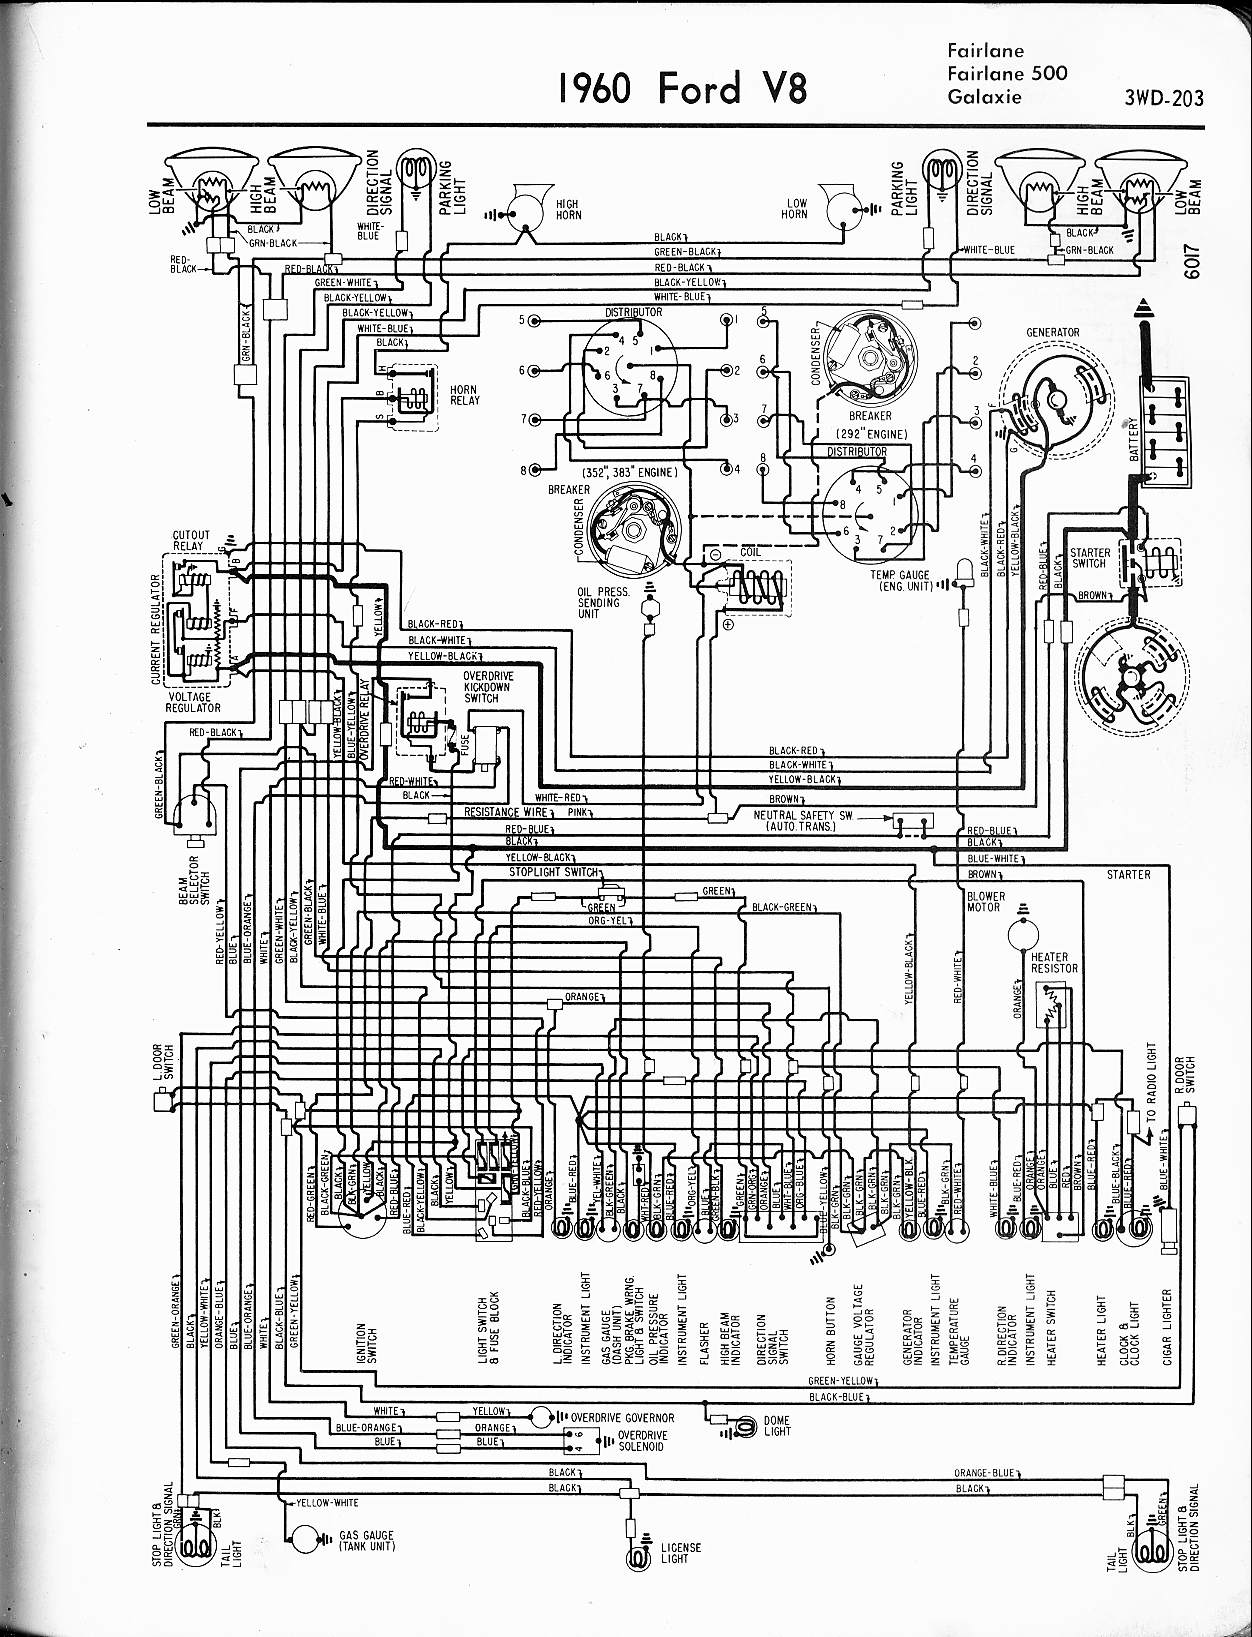 Wiring Diagrams Likewise 1967 Ford Mustang Alternator Wiring Diagram